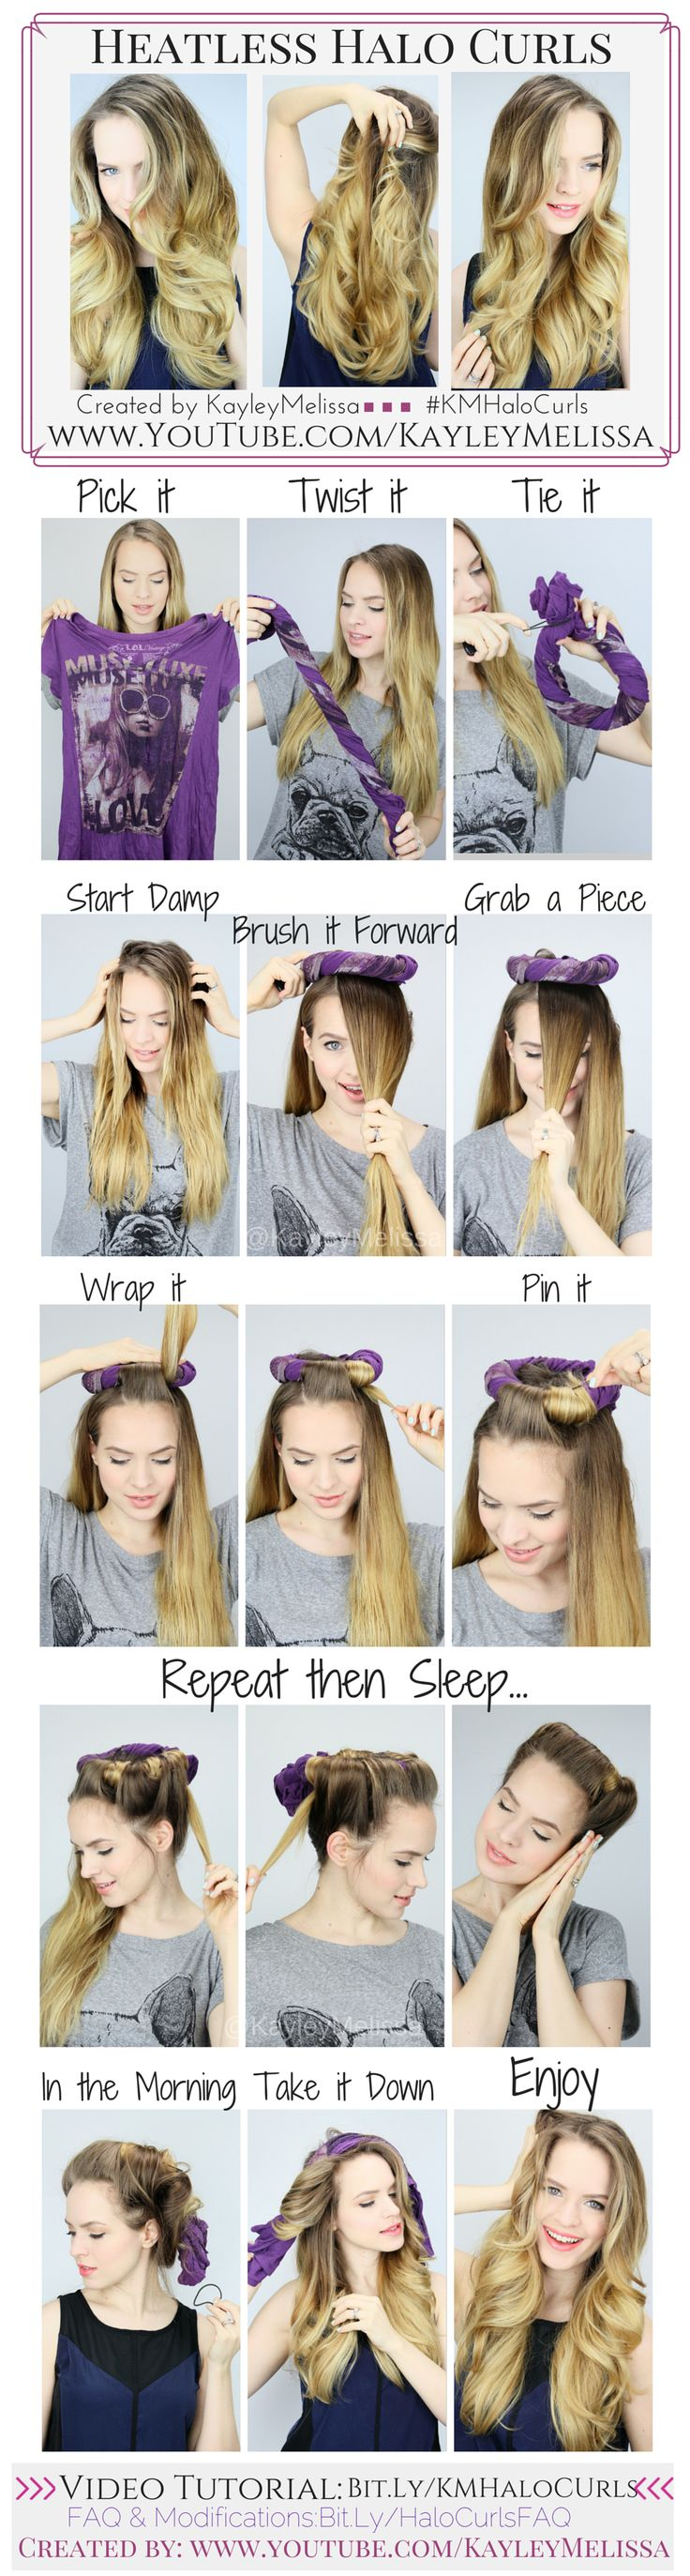 DIY HEATLESS CURLS :: Heatless Halo Curls by #kayleymelissa :: Large image here: http://static.wixstatic.com/media/8dbc18_8847f92c7be946488beb71bc8e052bb2.png :: Click to go to her blog for a YouTube video tutorial.